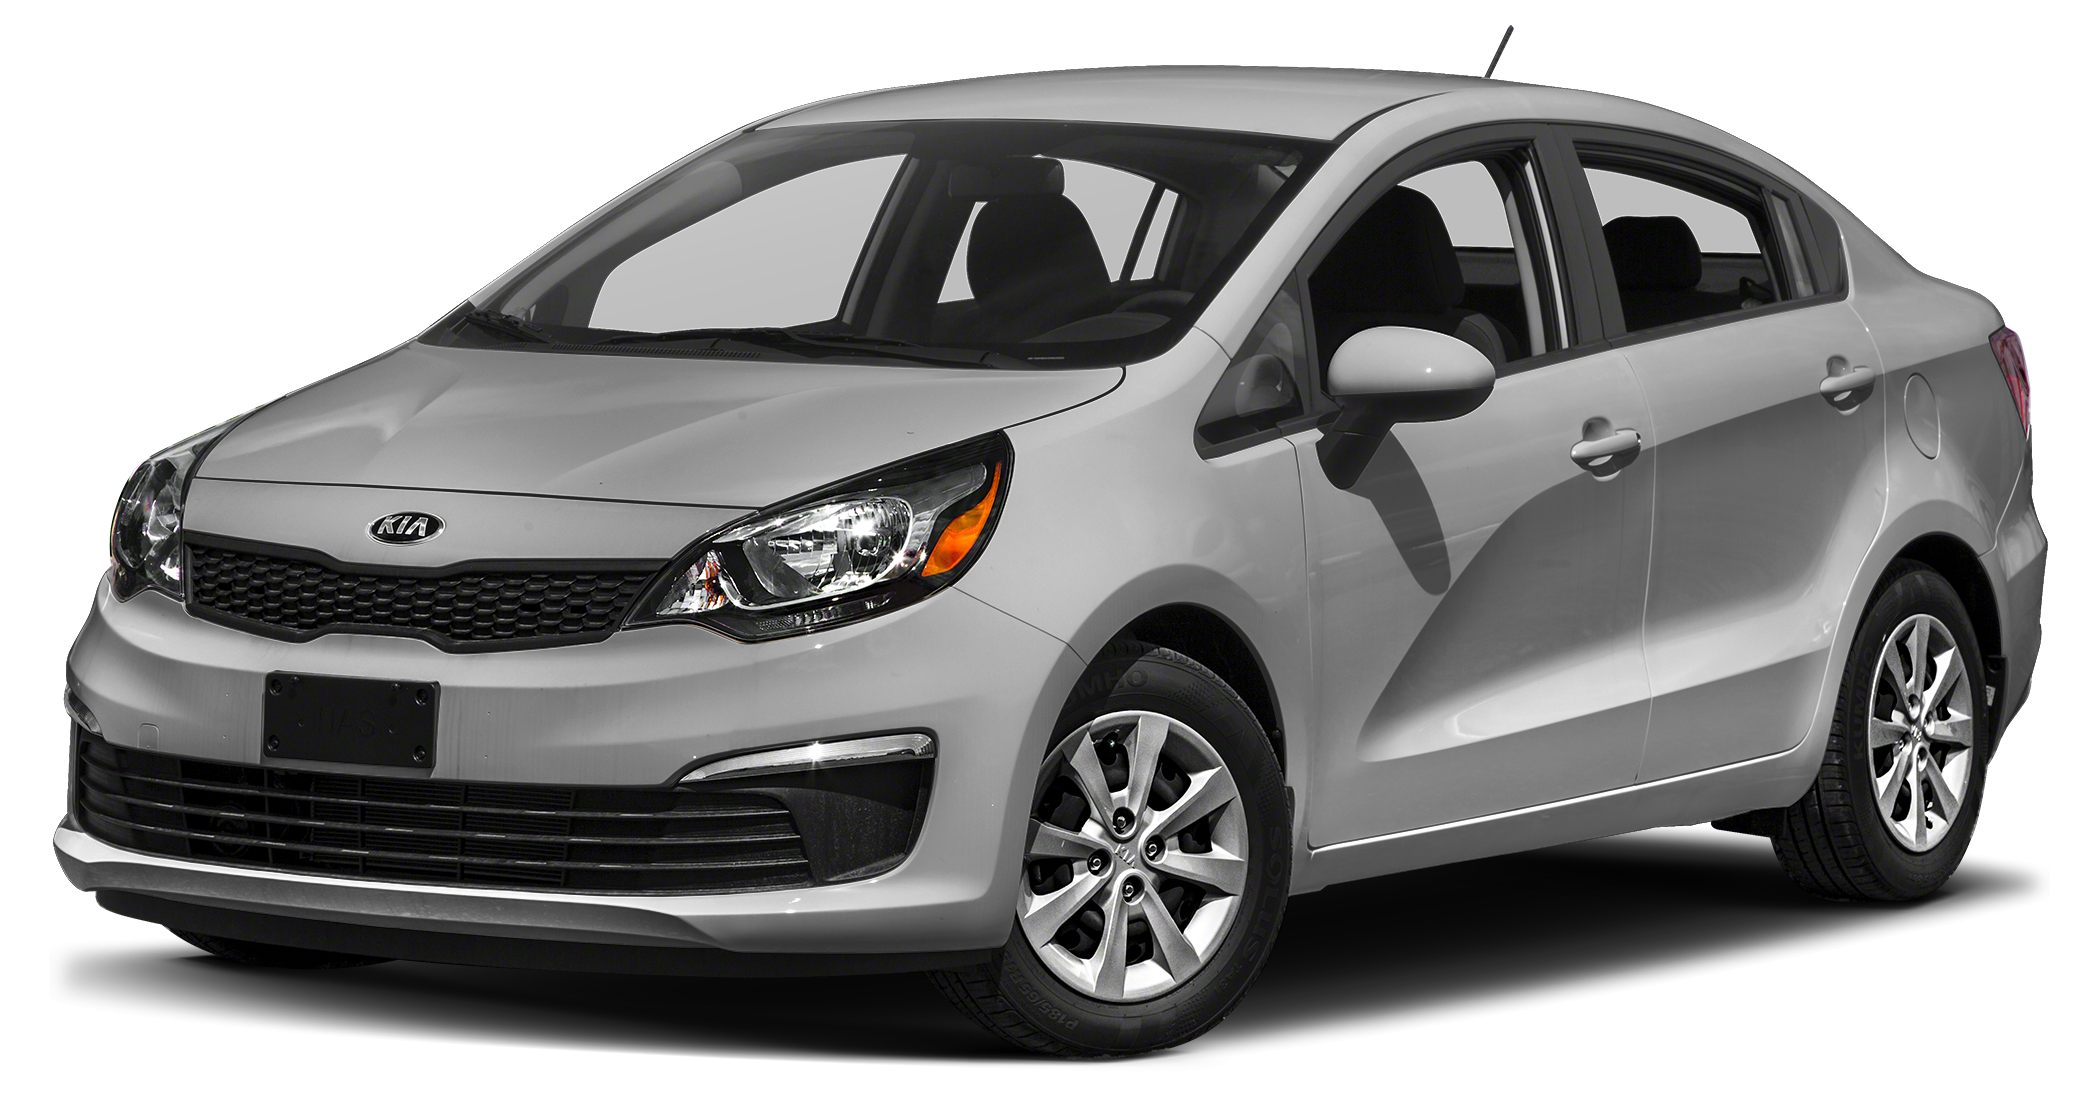 2017 Kia Rio LX This 2017 Kia Rio 4dr LX Automatic features a 16L 4 CYLINDER 4cyl Gasoline engine